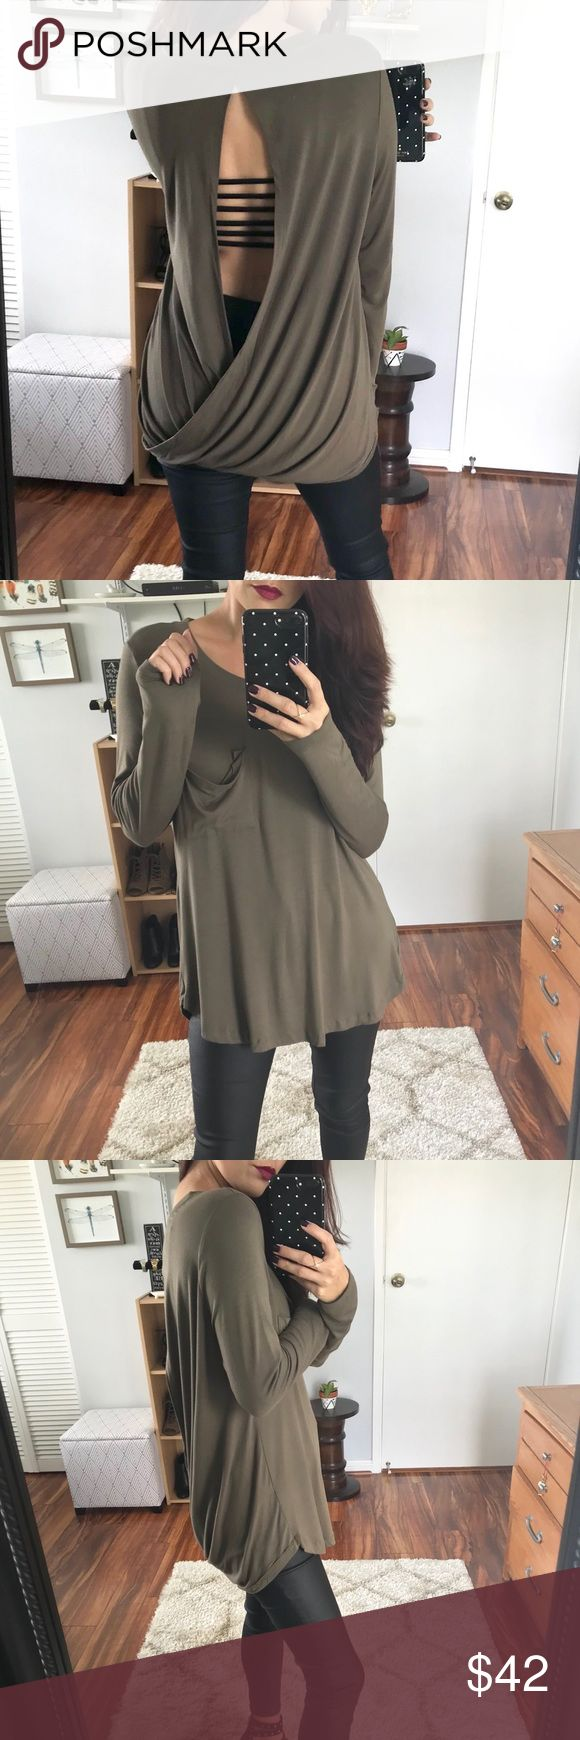 🆕 Perry Soft Tulip Back LS Tunic - Olive A super soft basic LS with a twist.  Pretty tulip design in back, with a draped pocket in front.  I paired mine with a strappy back bralette.  Would also look great paired with a cami for more coverage.  Available in Olive, Dark Plum, & Caramel.  Modeling size Small.  Price firm unless bundled▫️10% off 2+ items. Tops Tunics